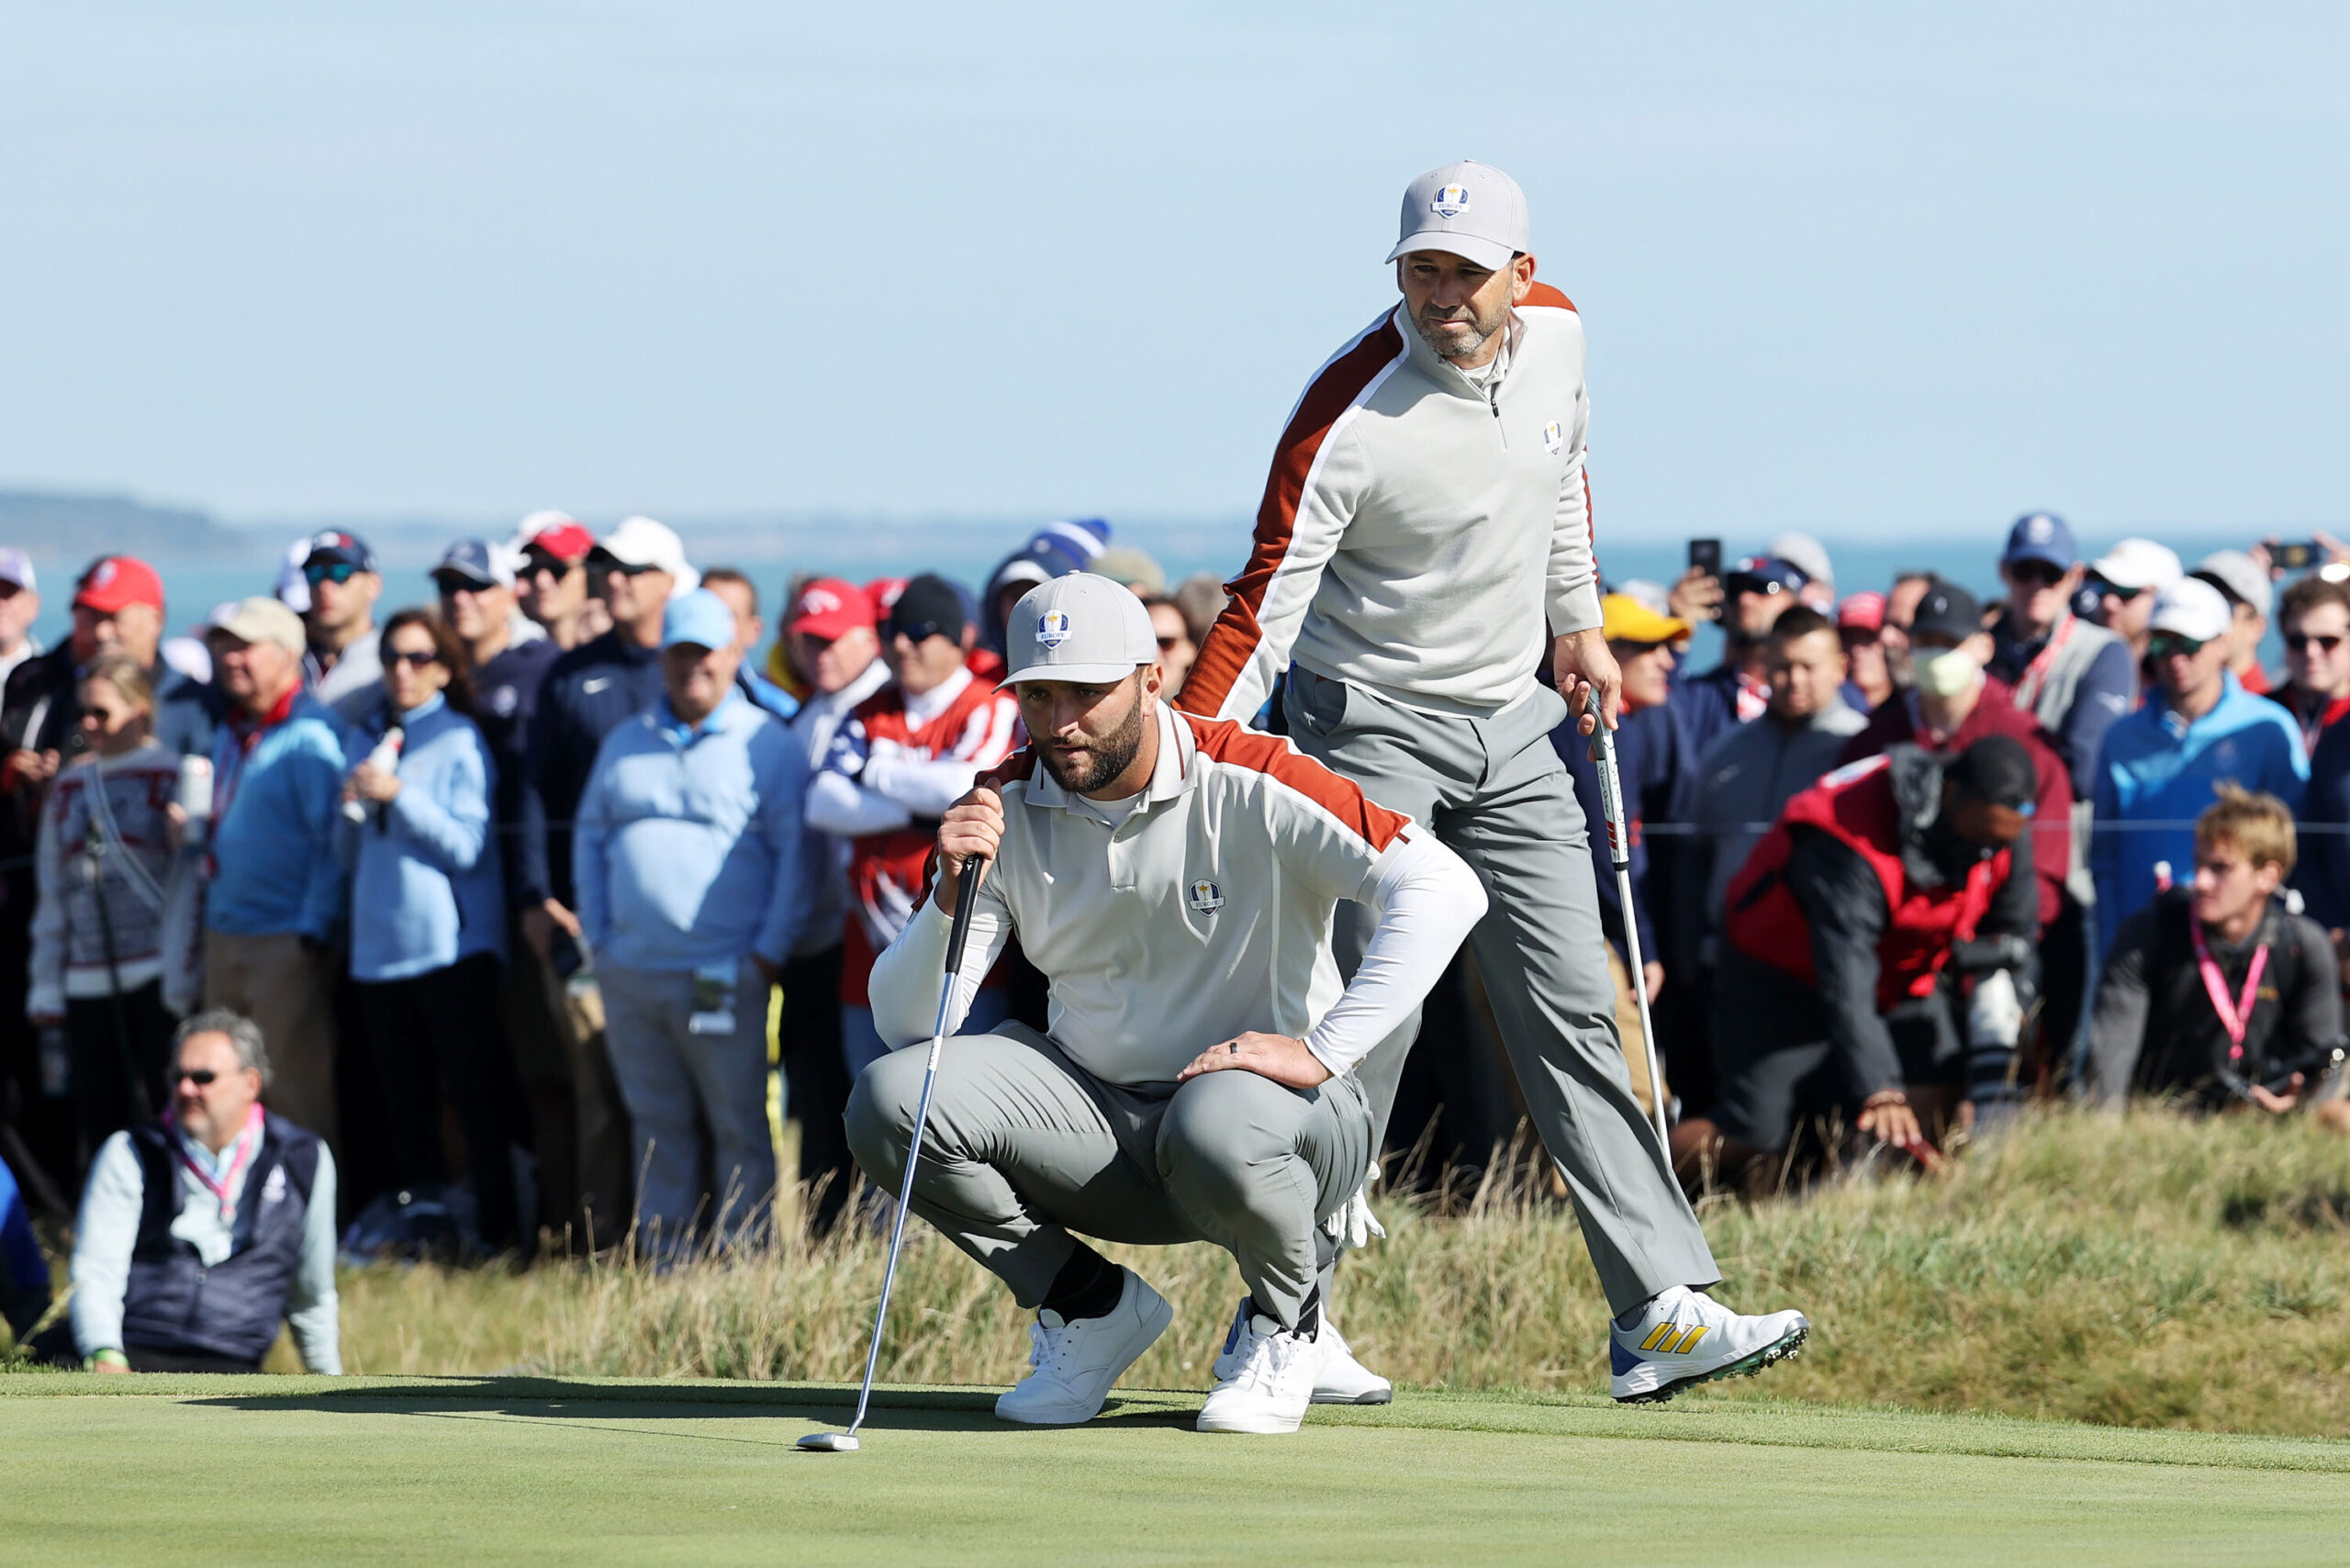 <i>Warren Little/Getty Images</i><br/>Sergio Garcia claimed his 24th Ryder Cup match victory